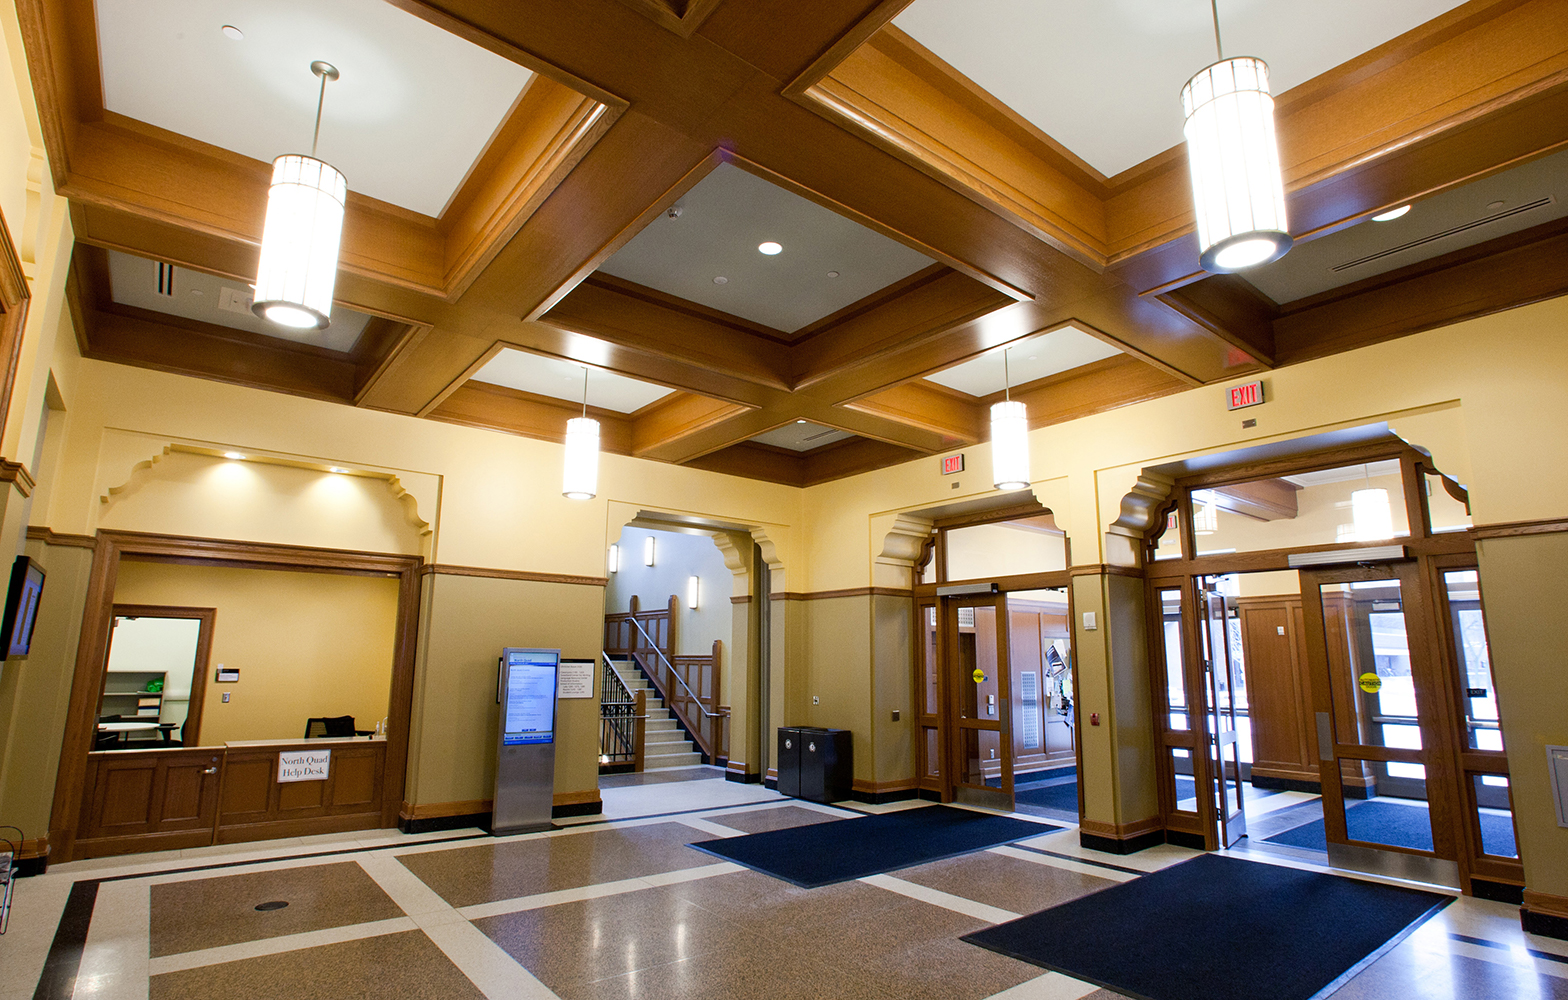 These cylindrical custom light fixtures illuminate a campus entryway with wooden ceiling beams.